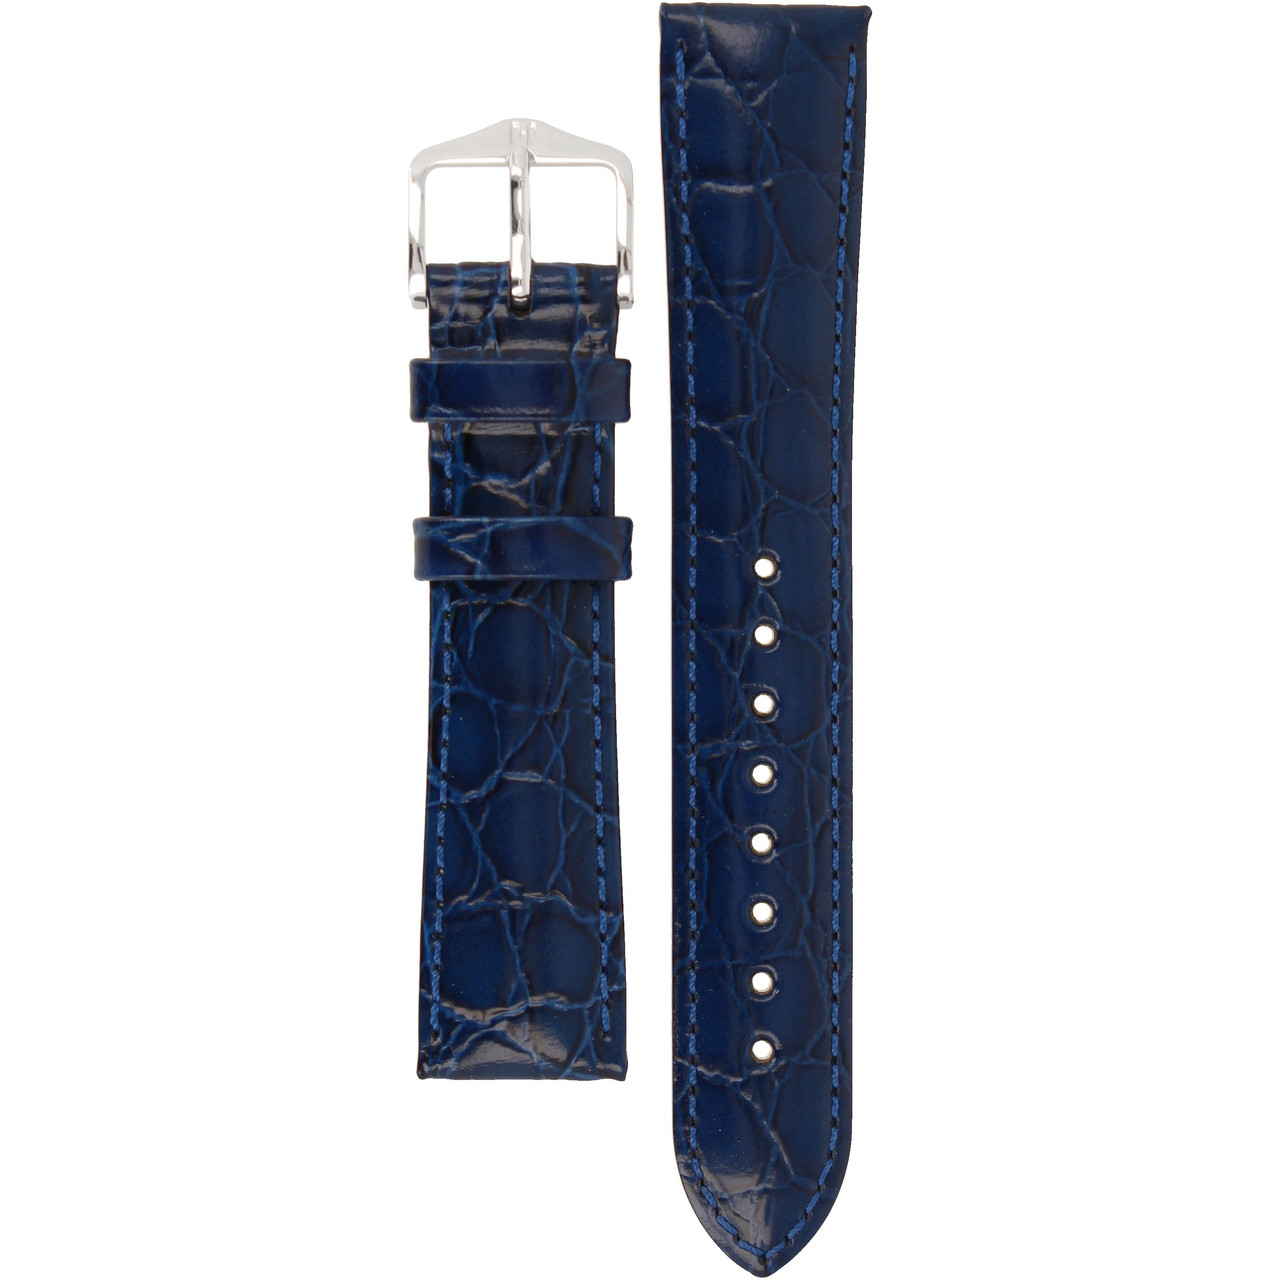 501736e24 Hirsch Crocograin Replacement Watch Strap Blue Crocodile Embossed Leather  18mm